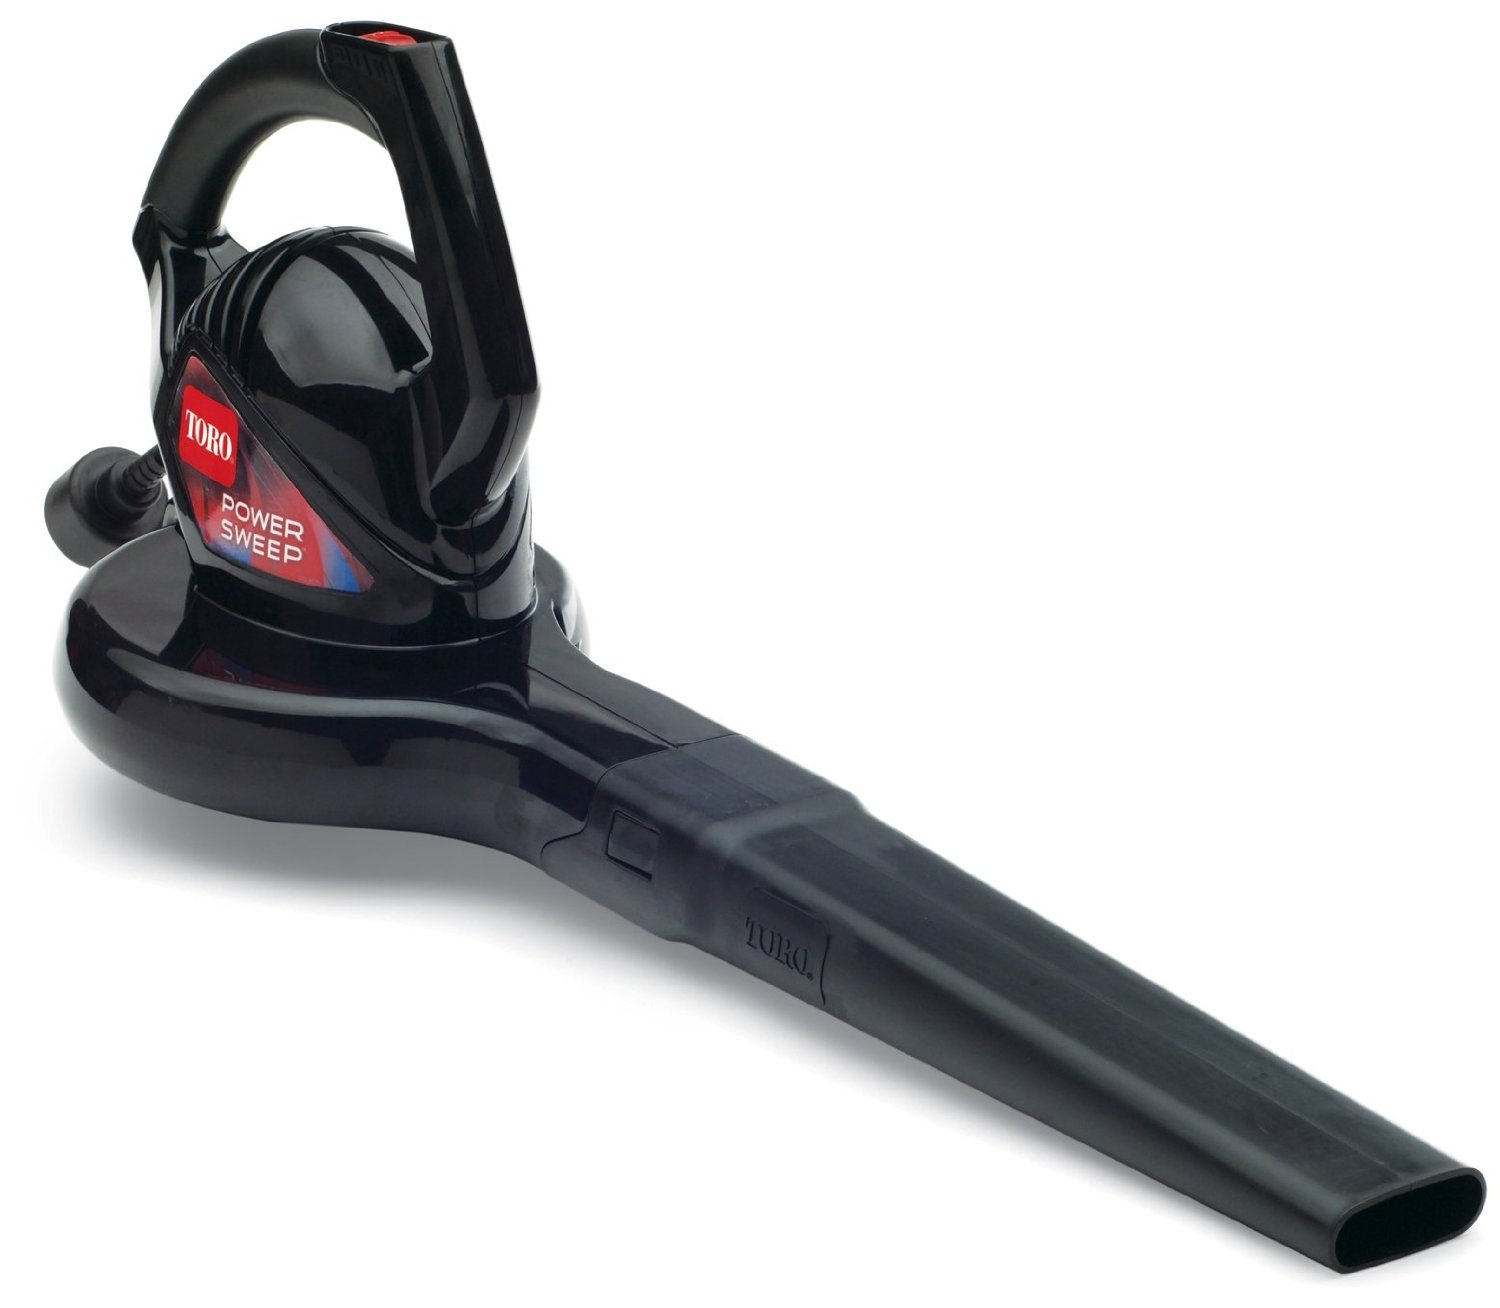 Review of - Toro 51585 Power Sweep 7 amp 2-Speed Electric Blower